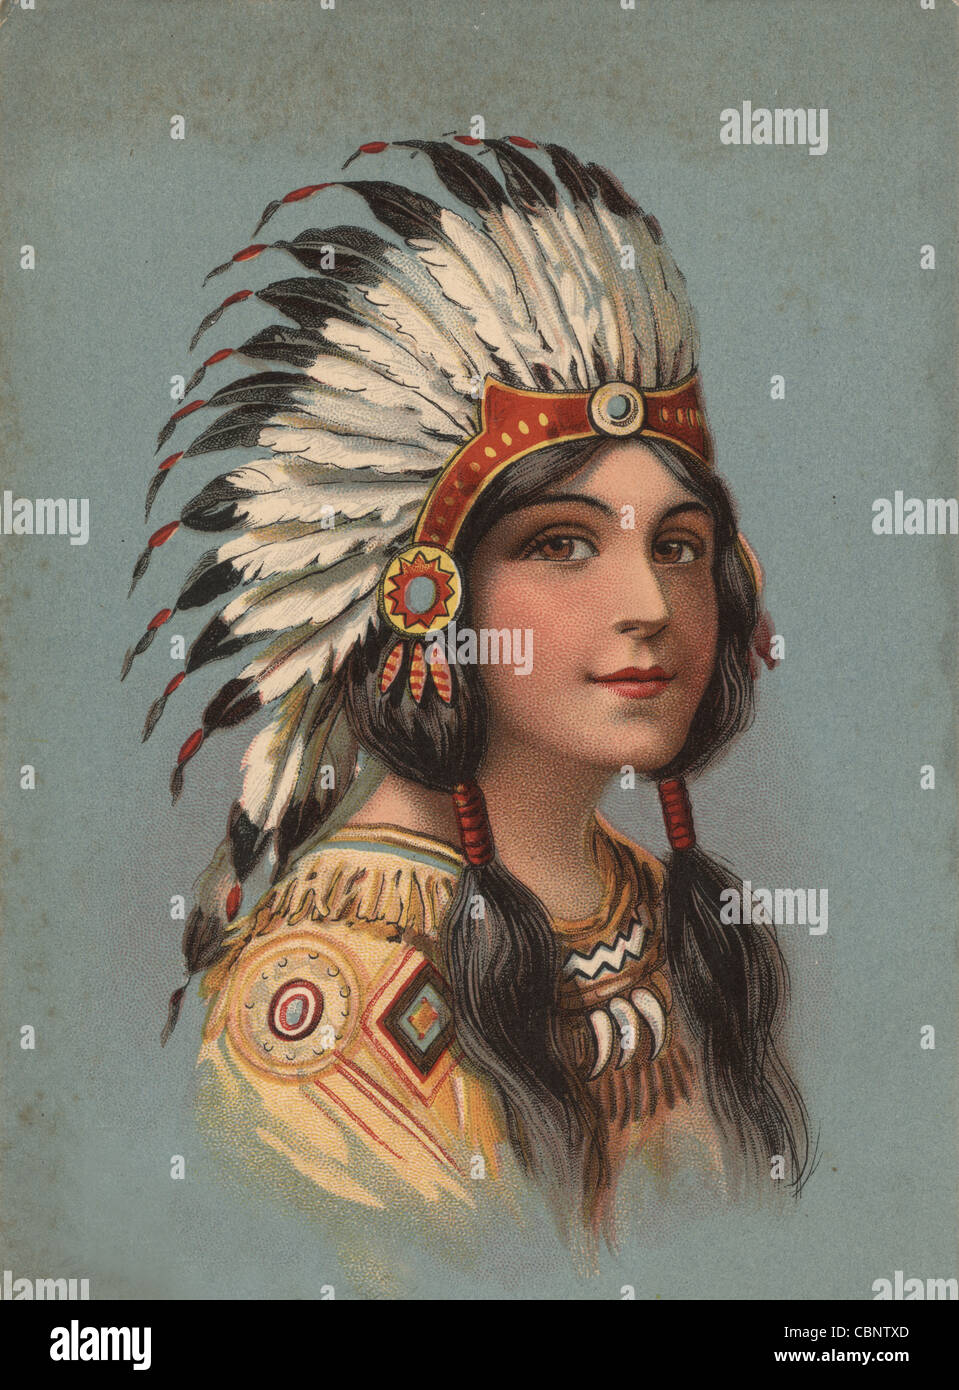 Native American Indian Beauty Immagini Stock